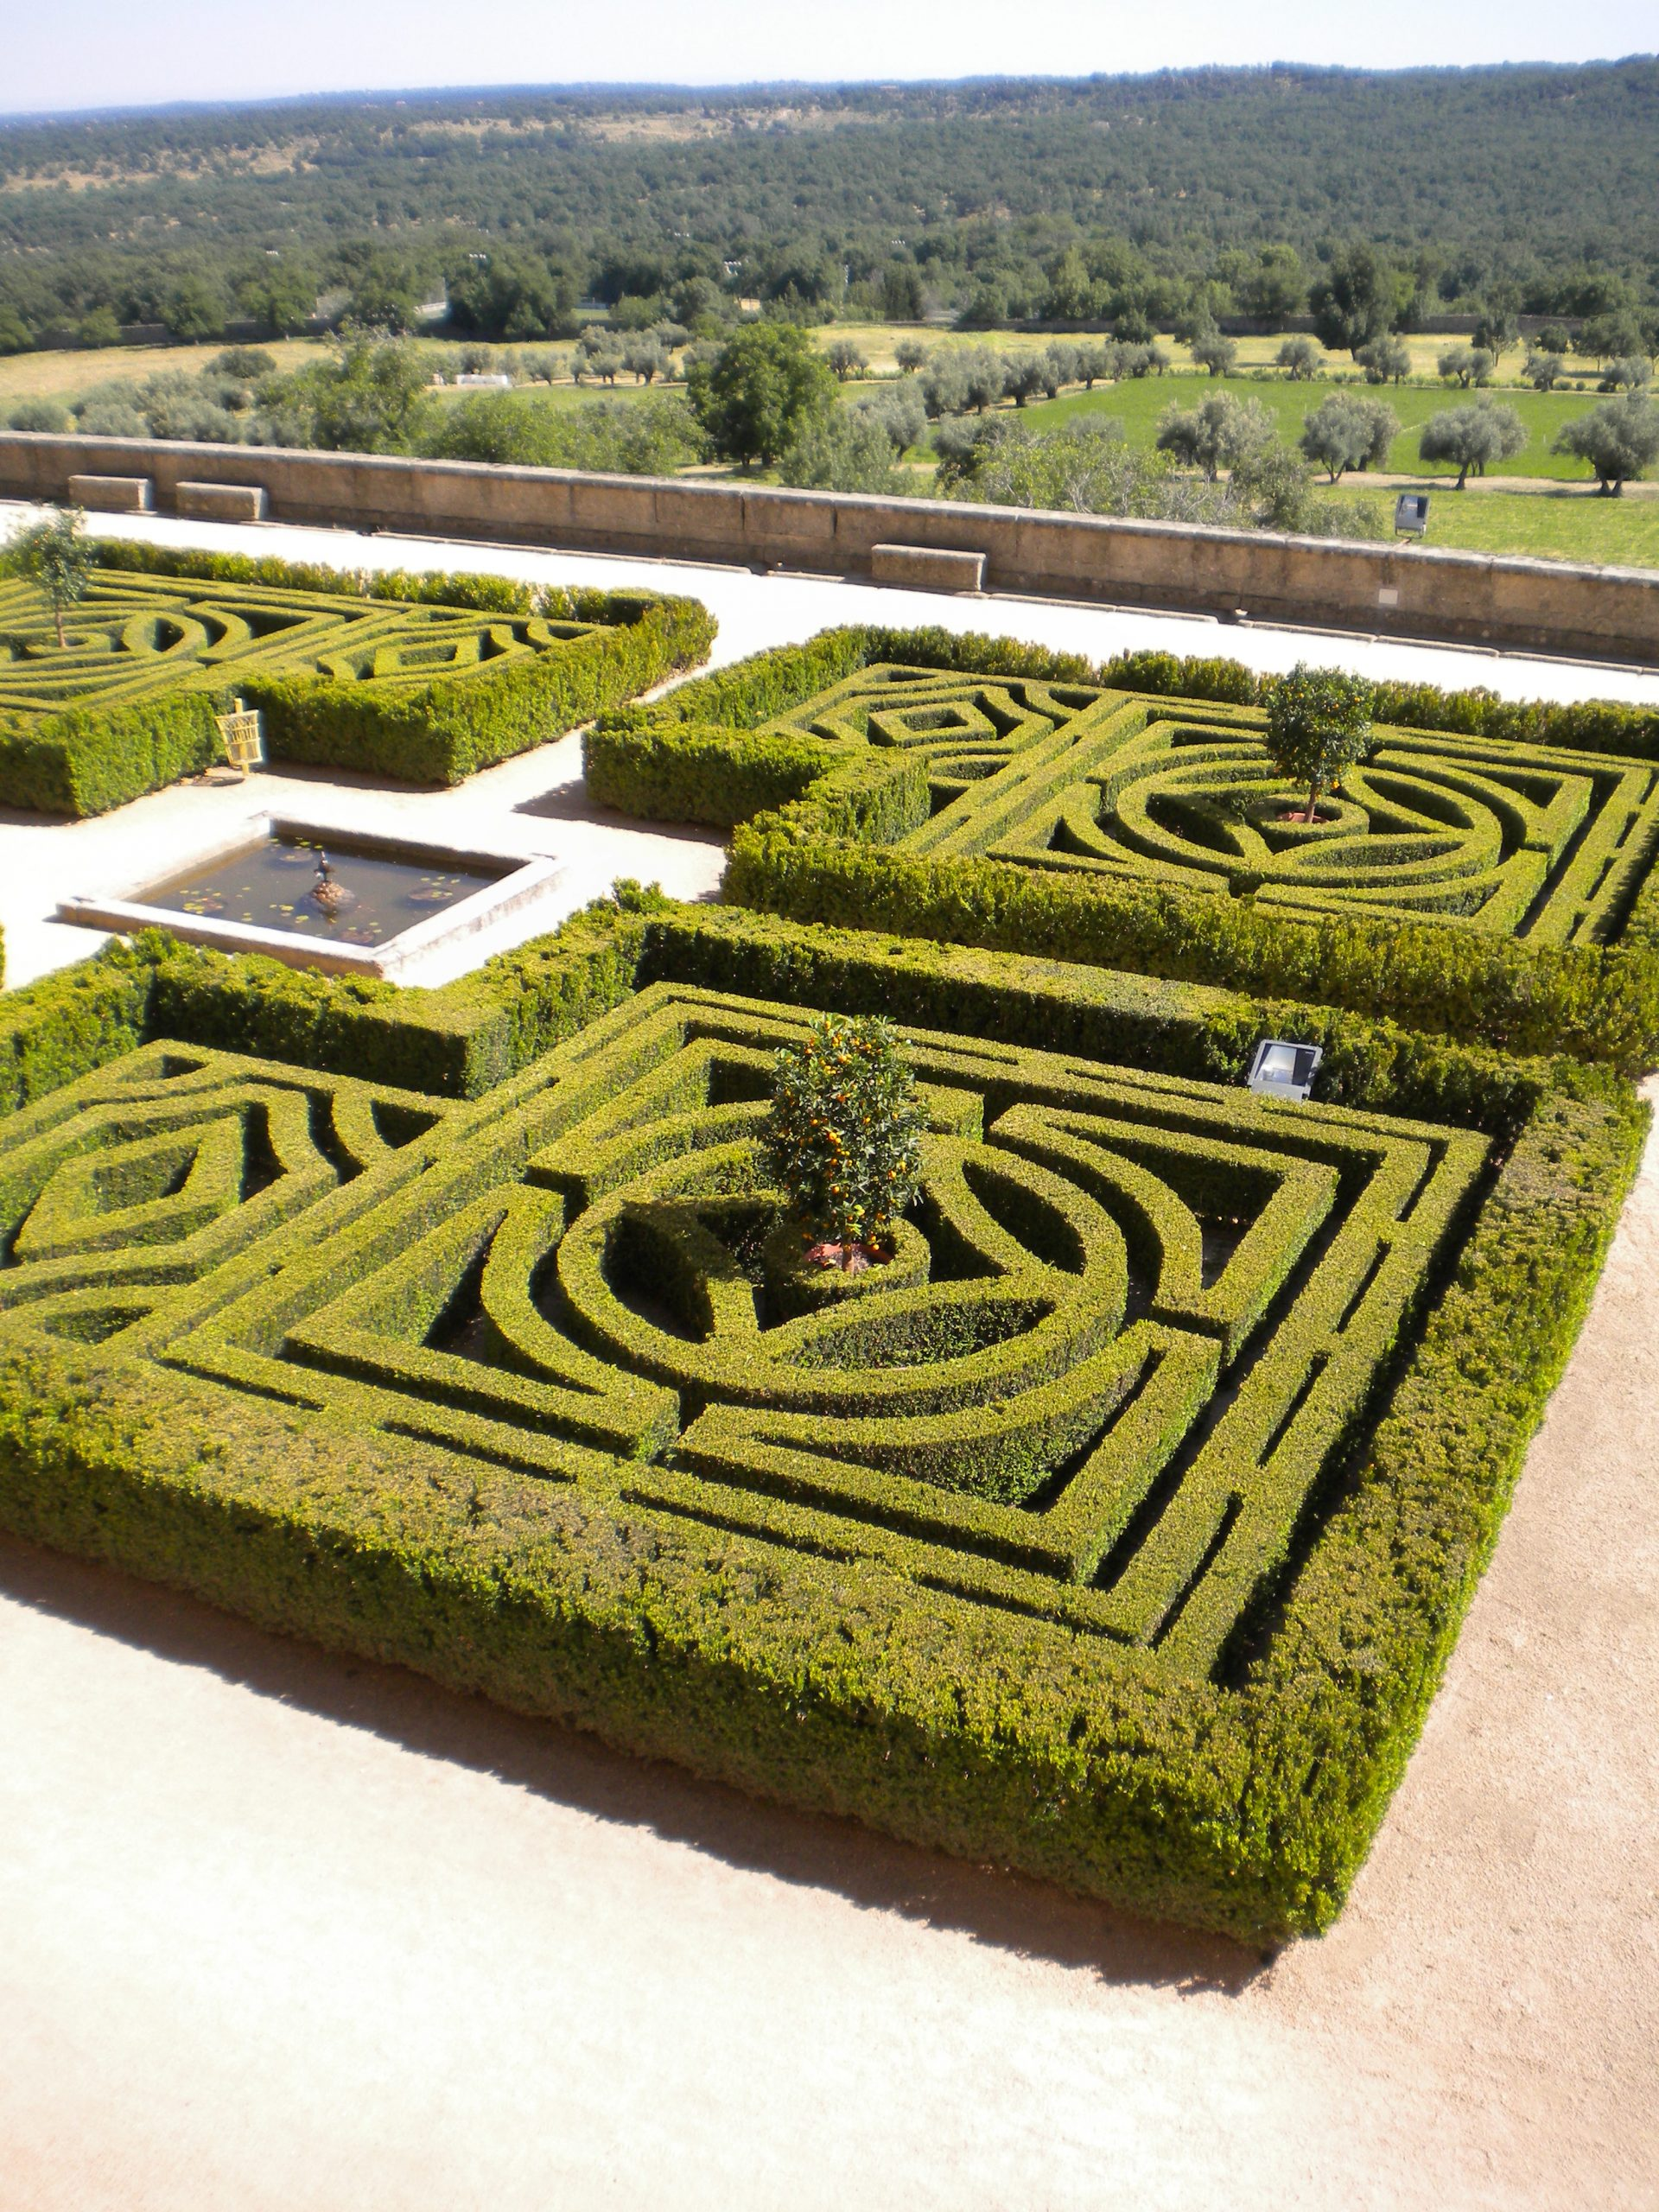 Monastery_El_Escorial_Spain_Gardens_Old_Style_Cut_Into_A_Maze_Pattern_for_Walking